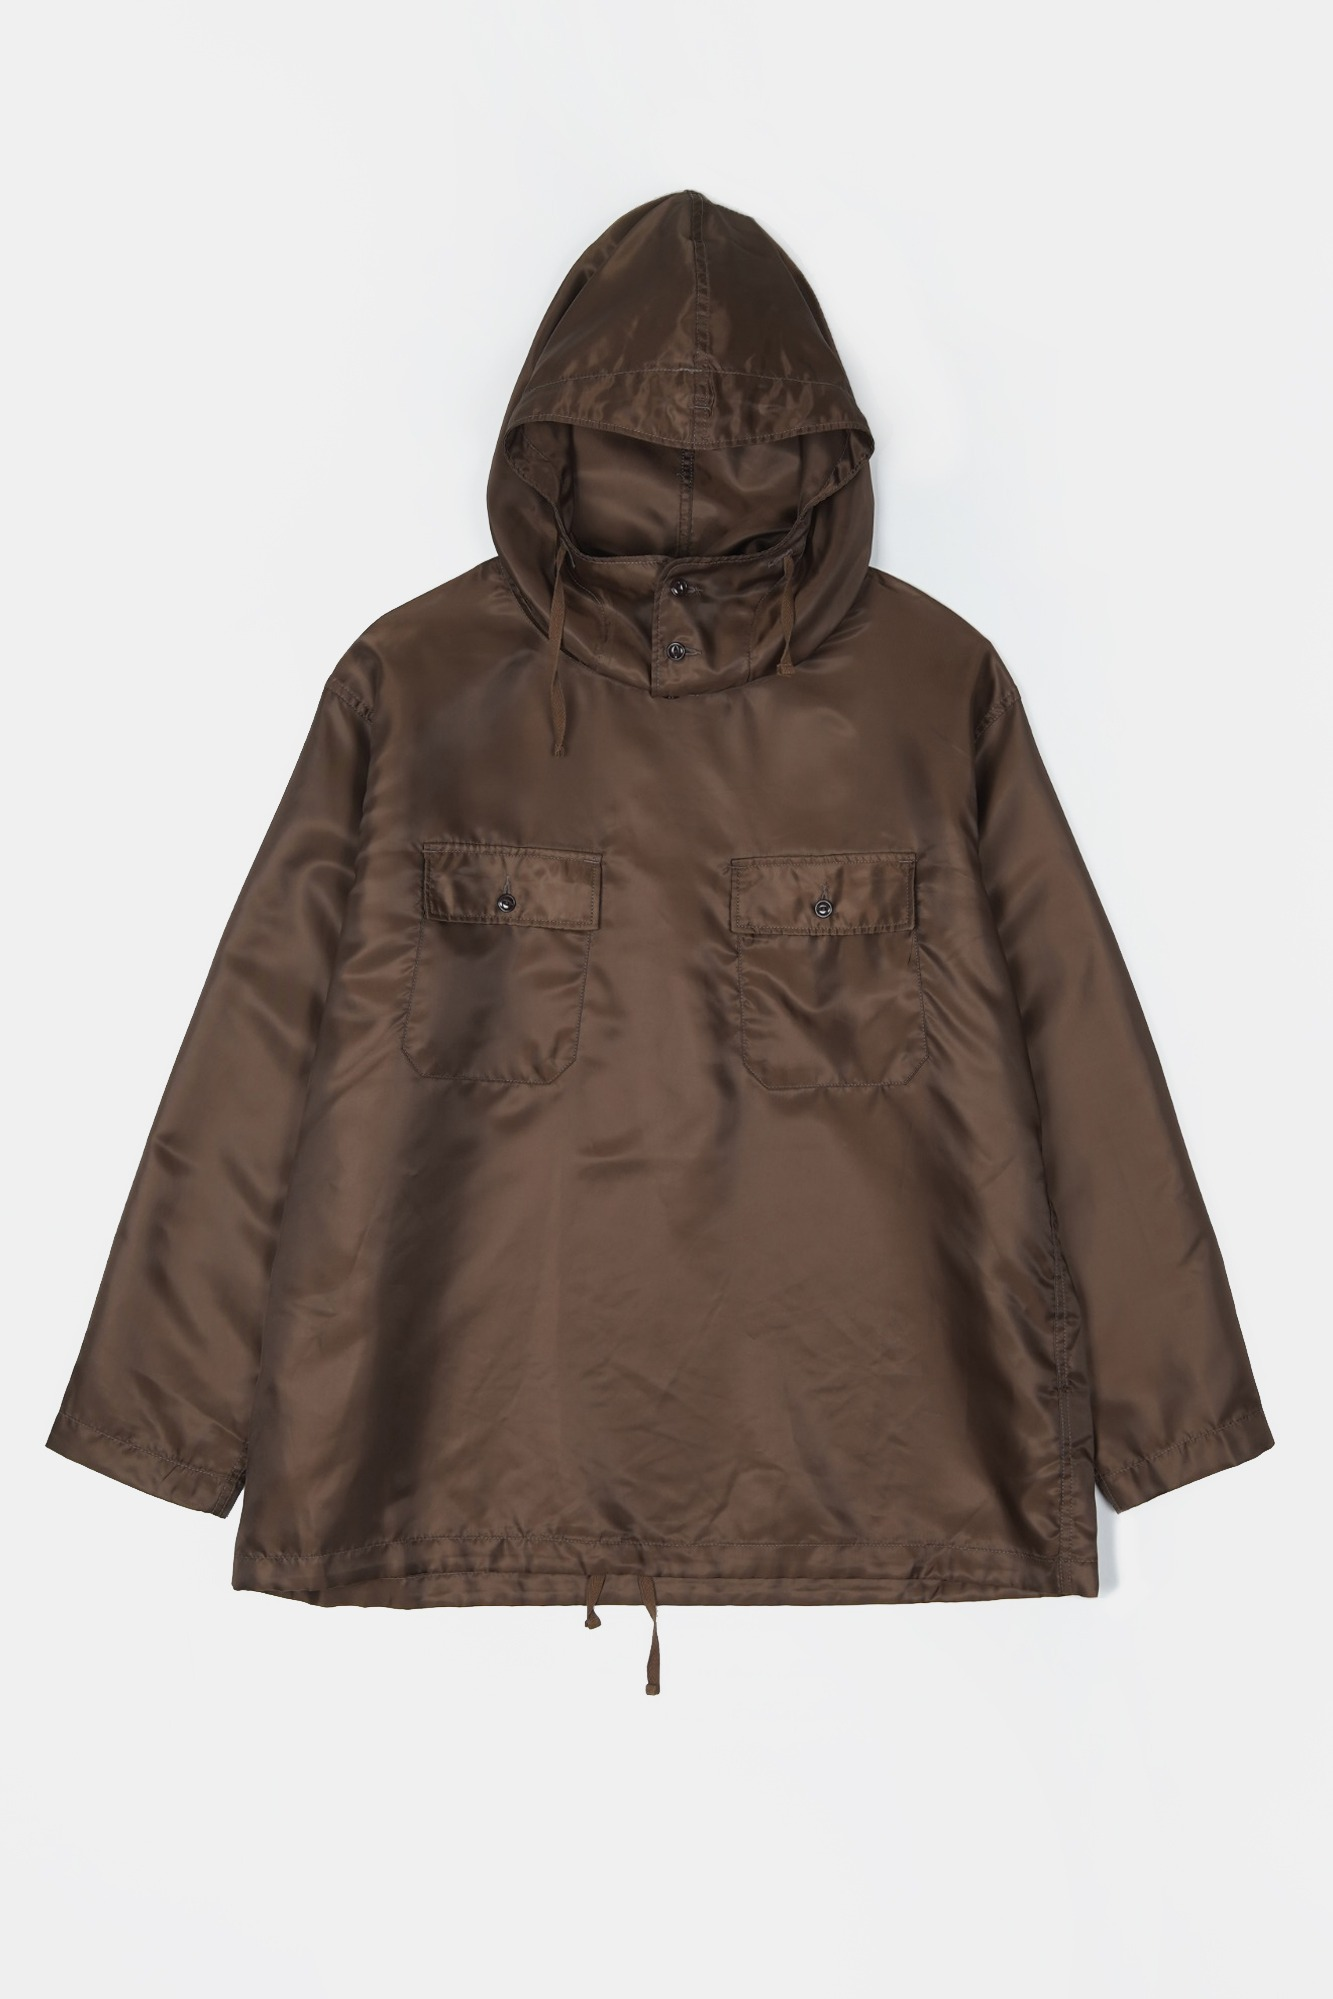 "ENGINEERED GARMENTS Cagoule Shirt ""Brown Polyester Pilot Twill"""